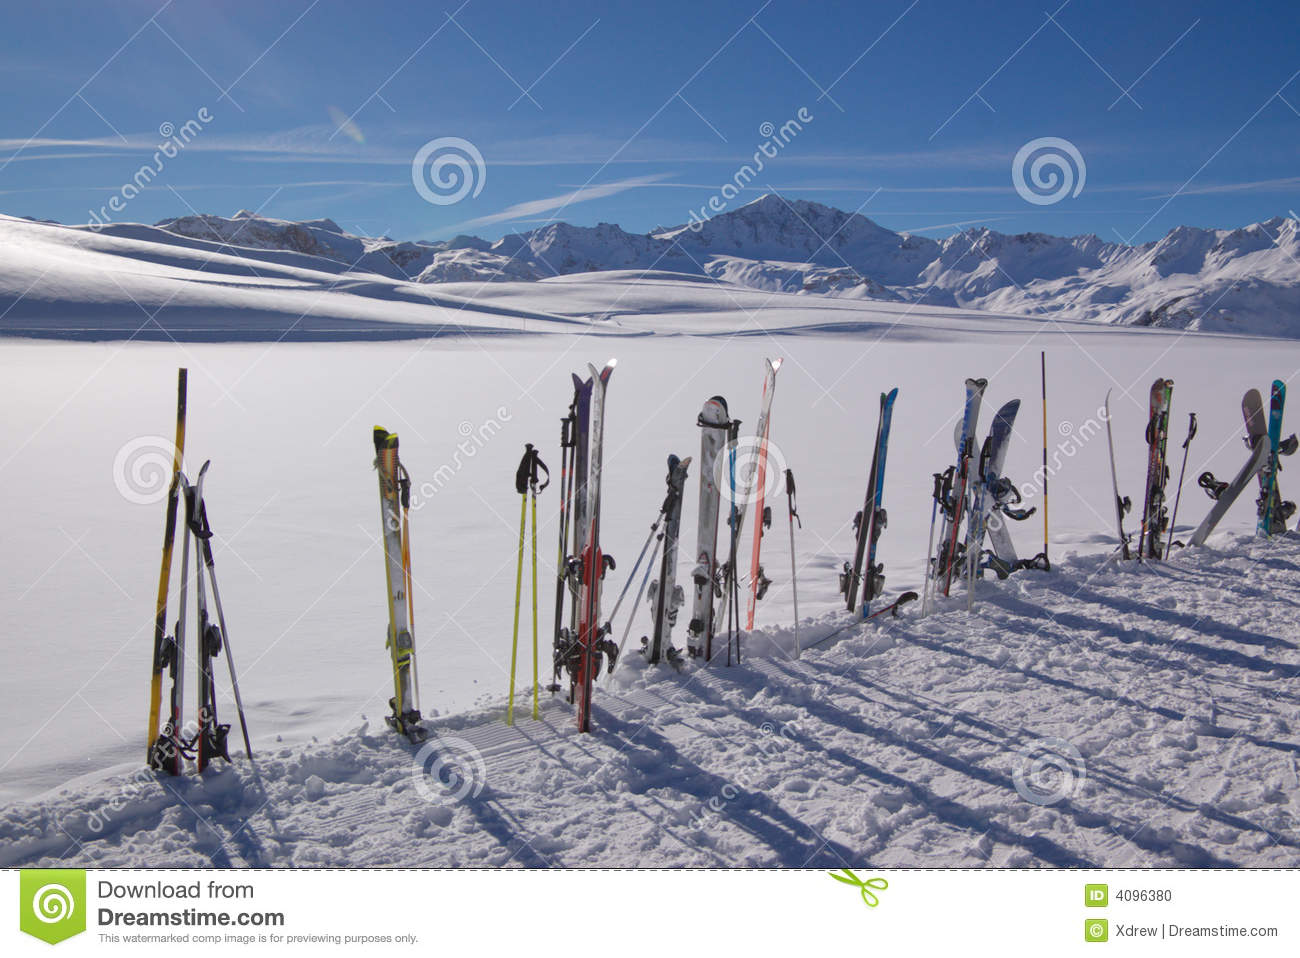 Skis and winter mountains